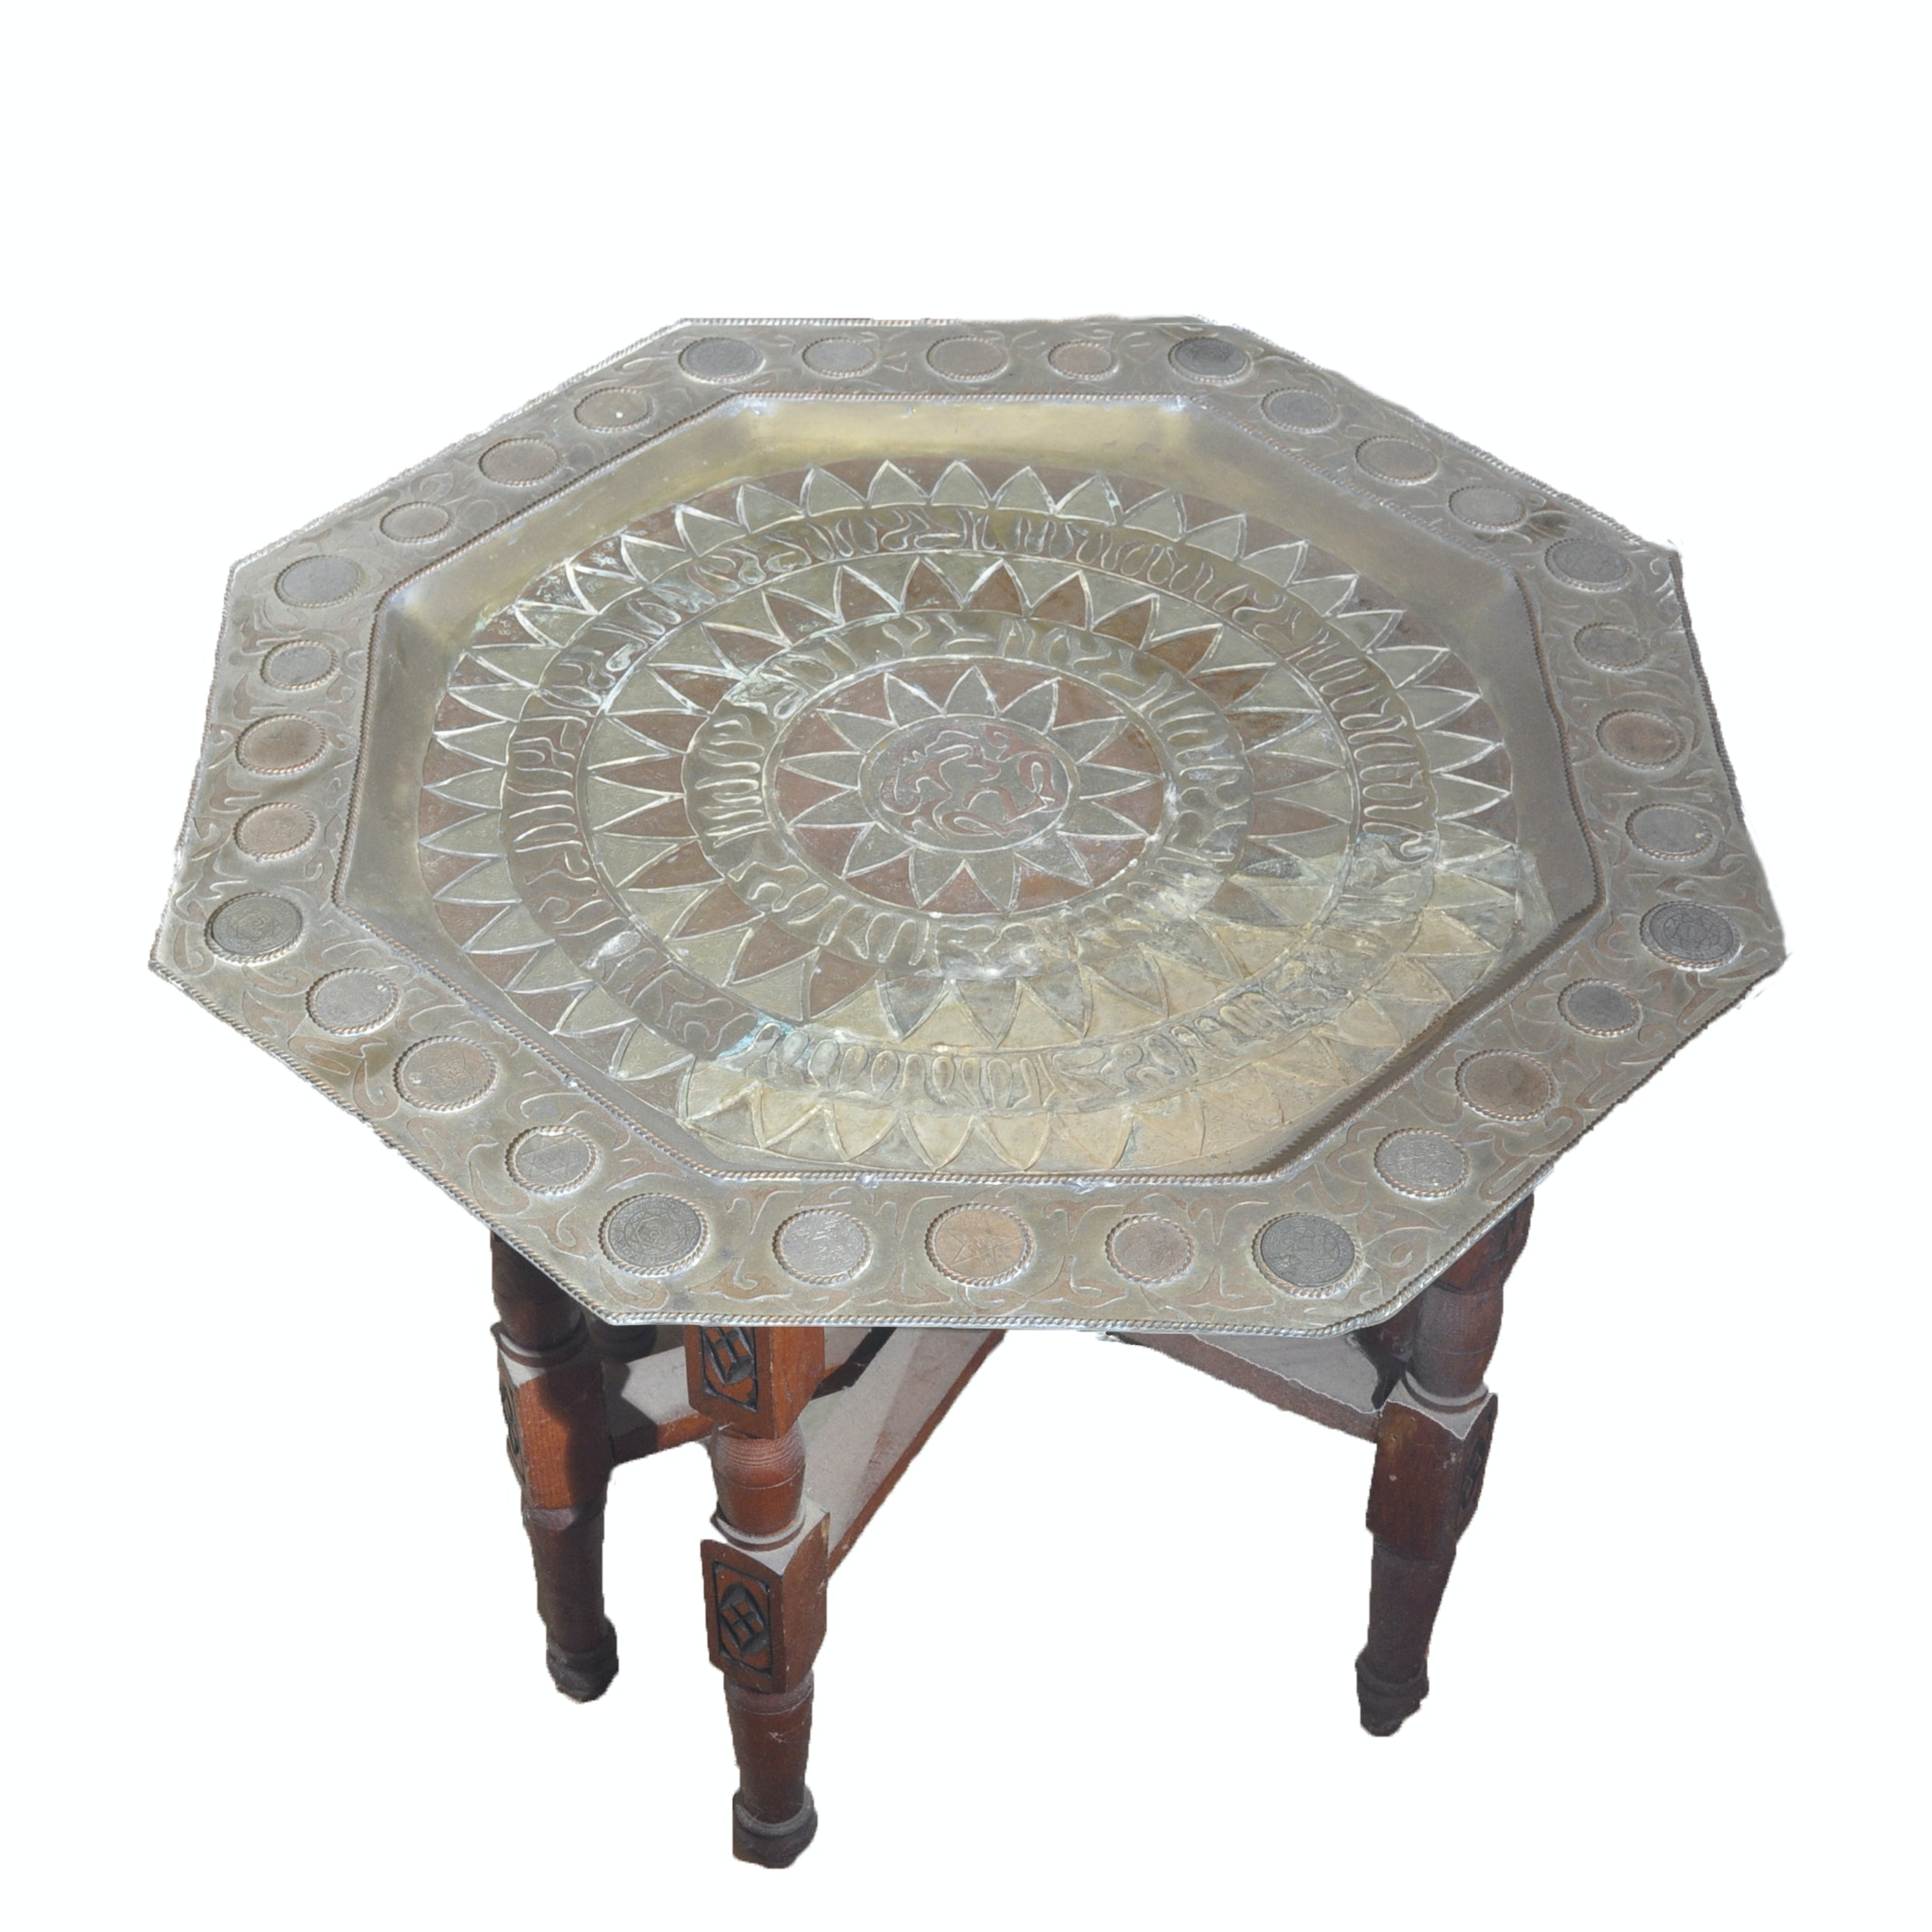 Etonnant Vintage Moroccan Mixed Metal Tray Table On Folding Carved Base ...